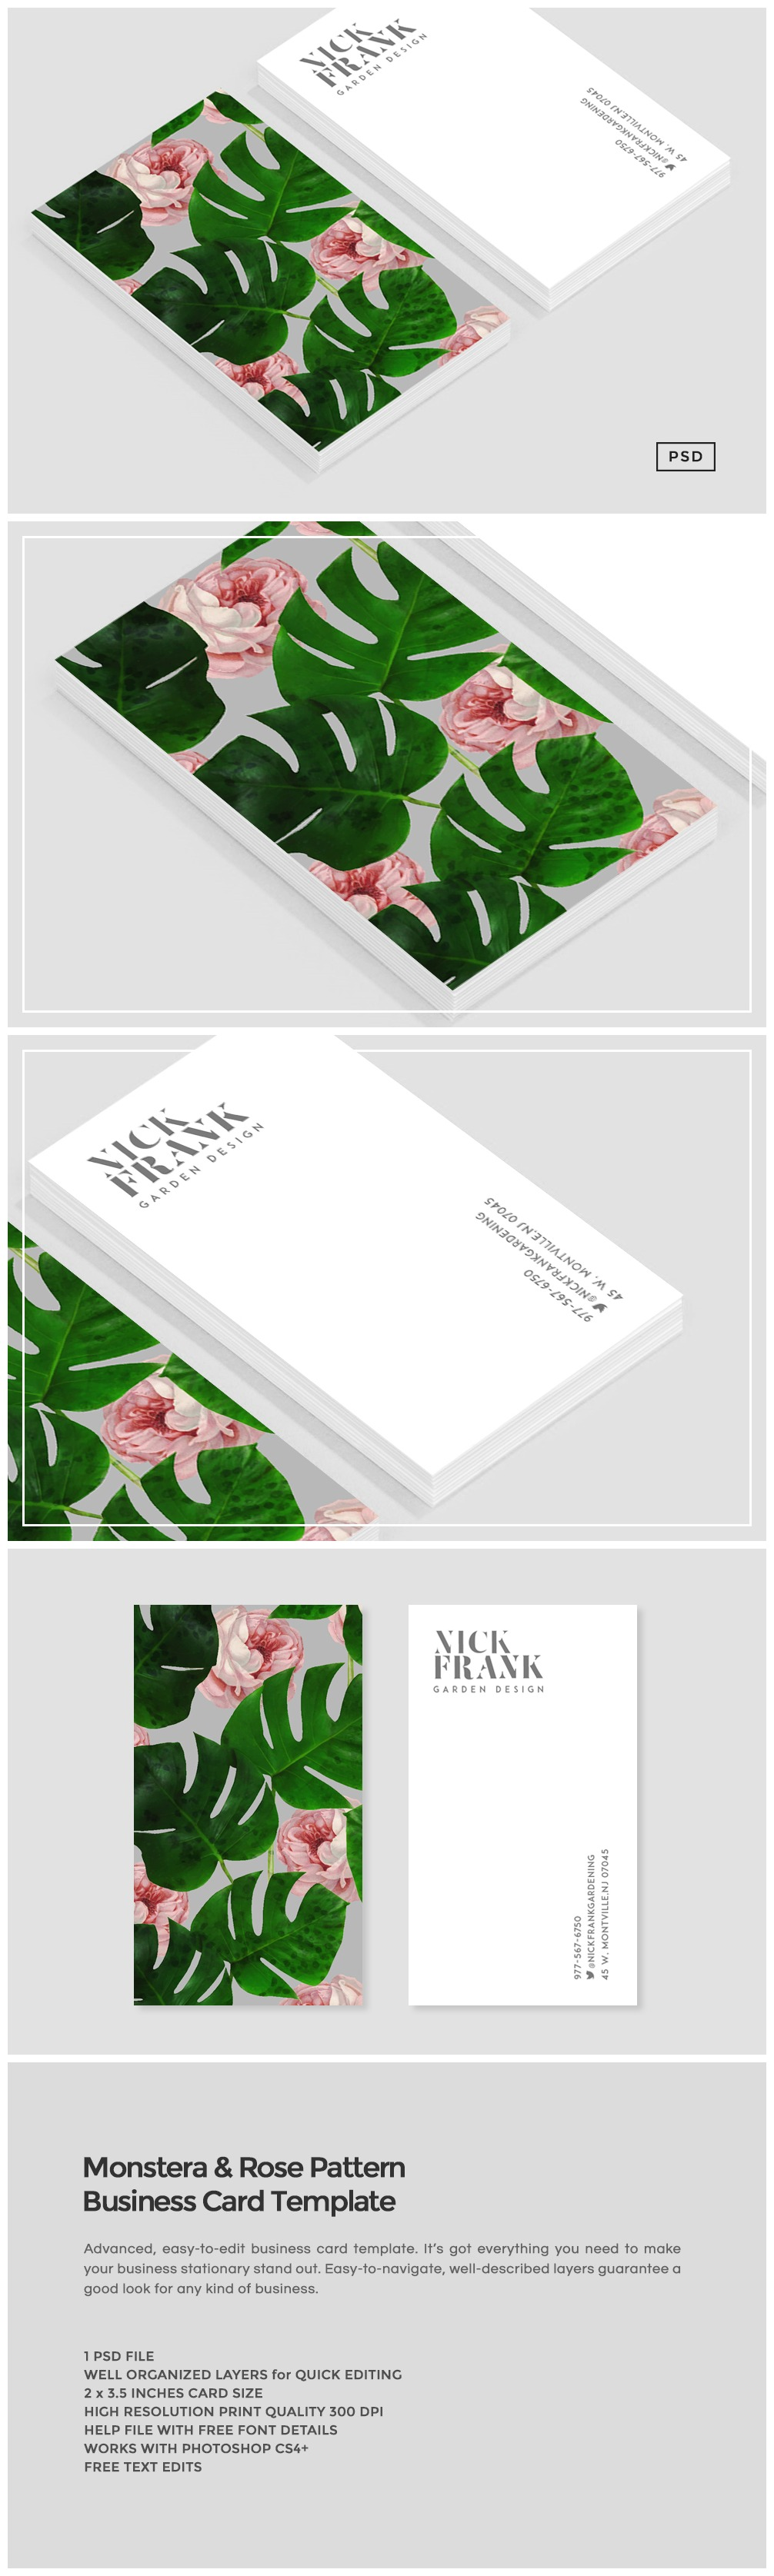 Monstera Rose Pattern Business Card By Design Co On